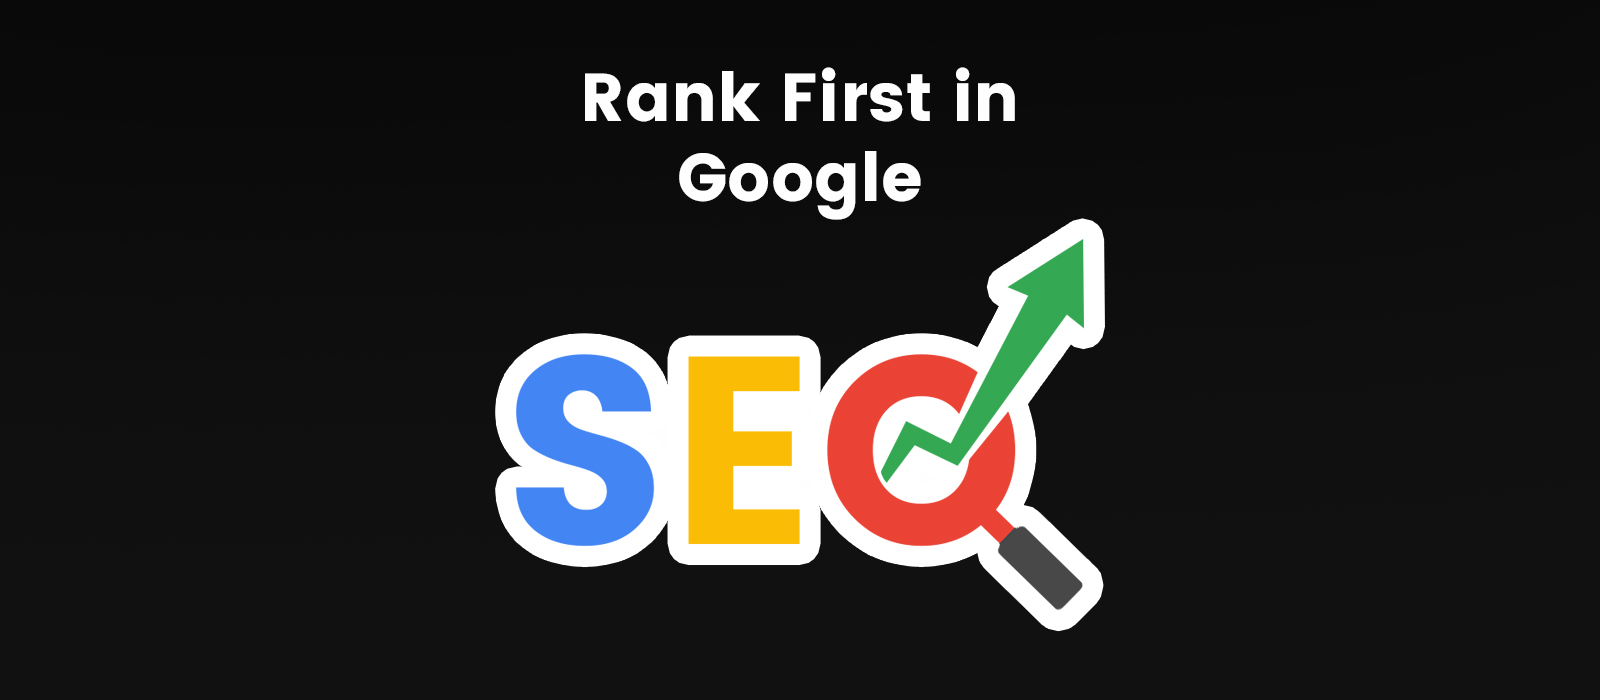 seo-search-engine-optimizationgoogle-course-digital-marketing-pouya-eti-2